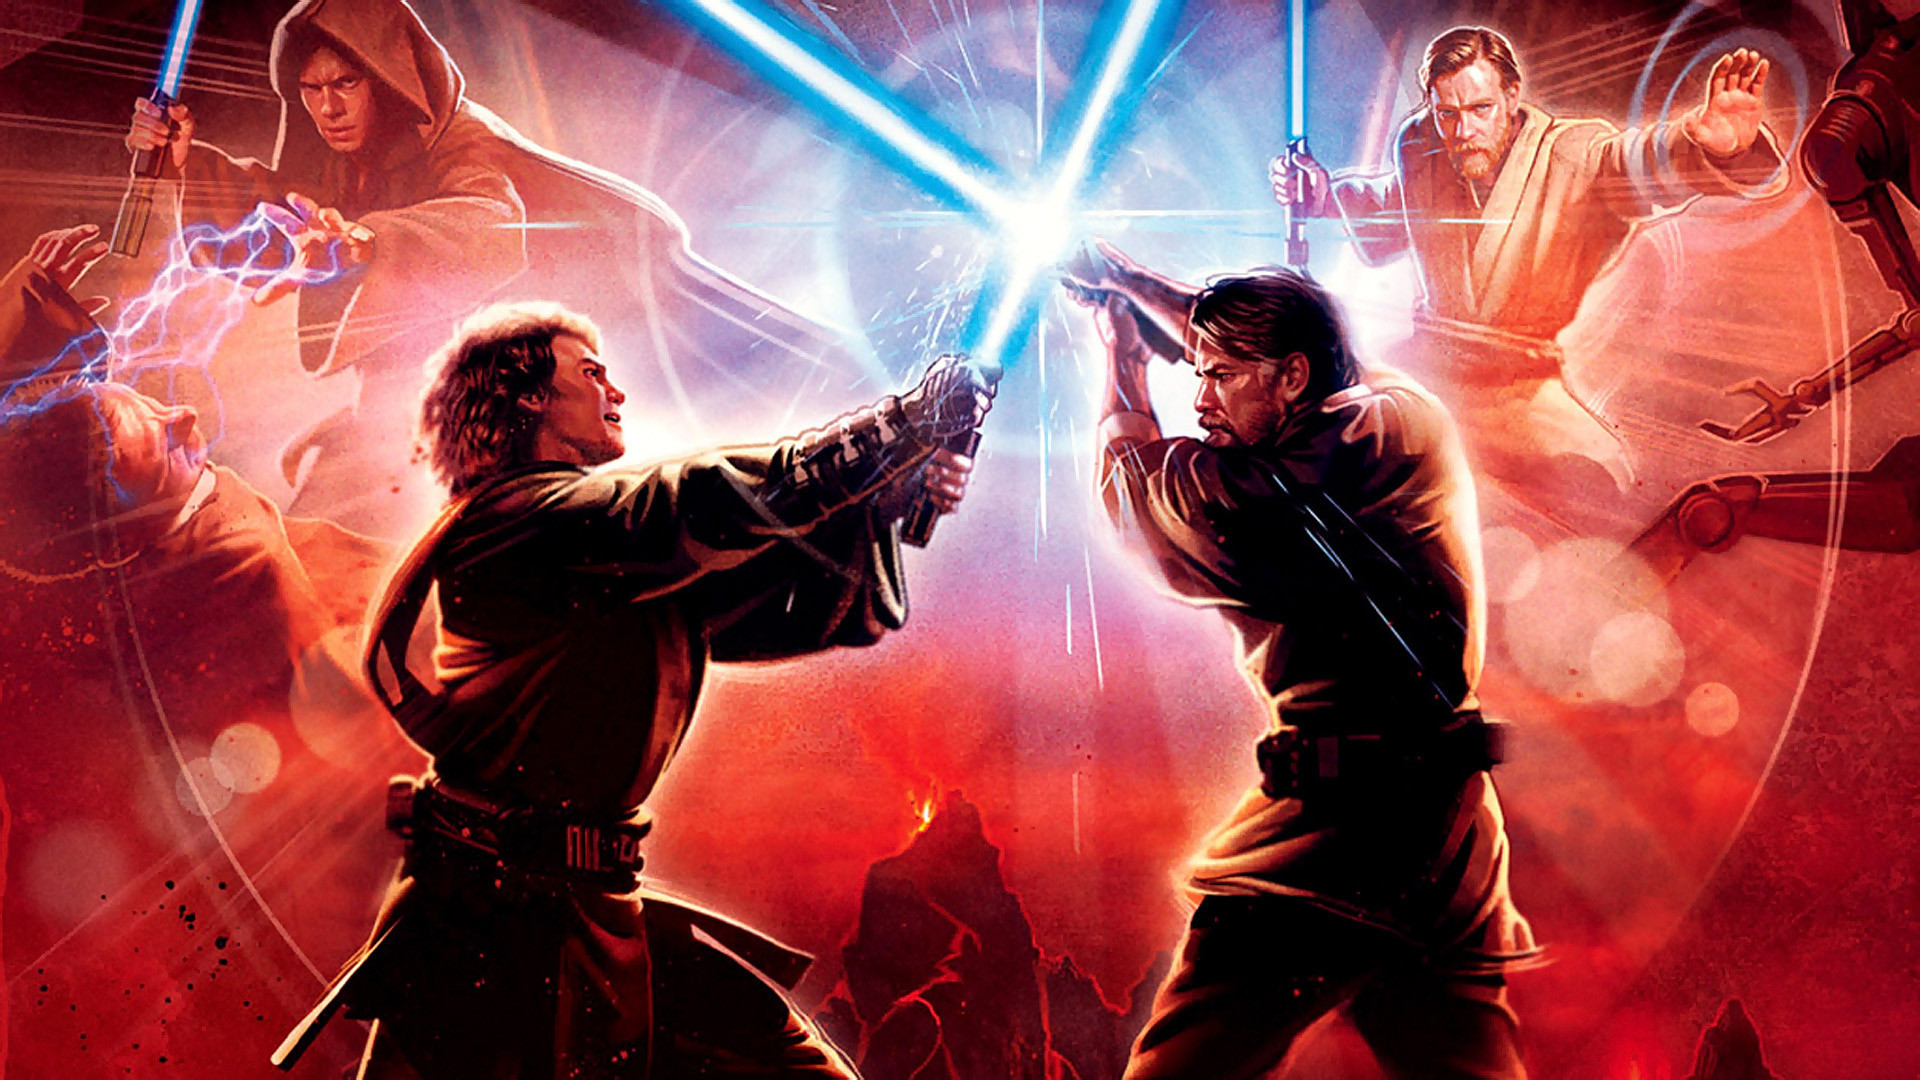 Star Wars Episode Iii Revenge Of The Sith Hd Wallpaper Background Image 1920x1080 Id 530478 Wallpaper Abyss